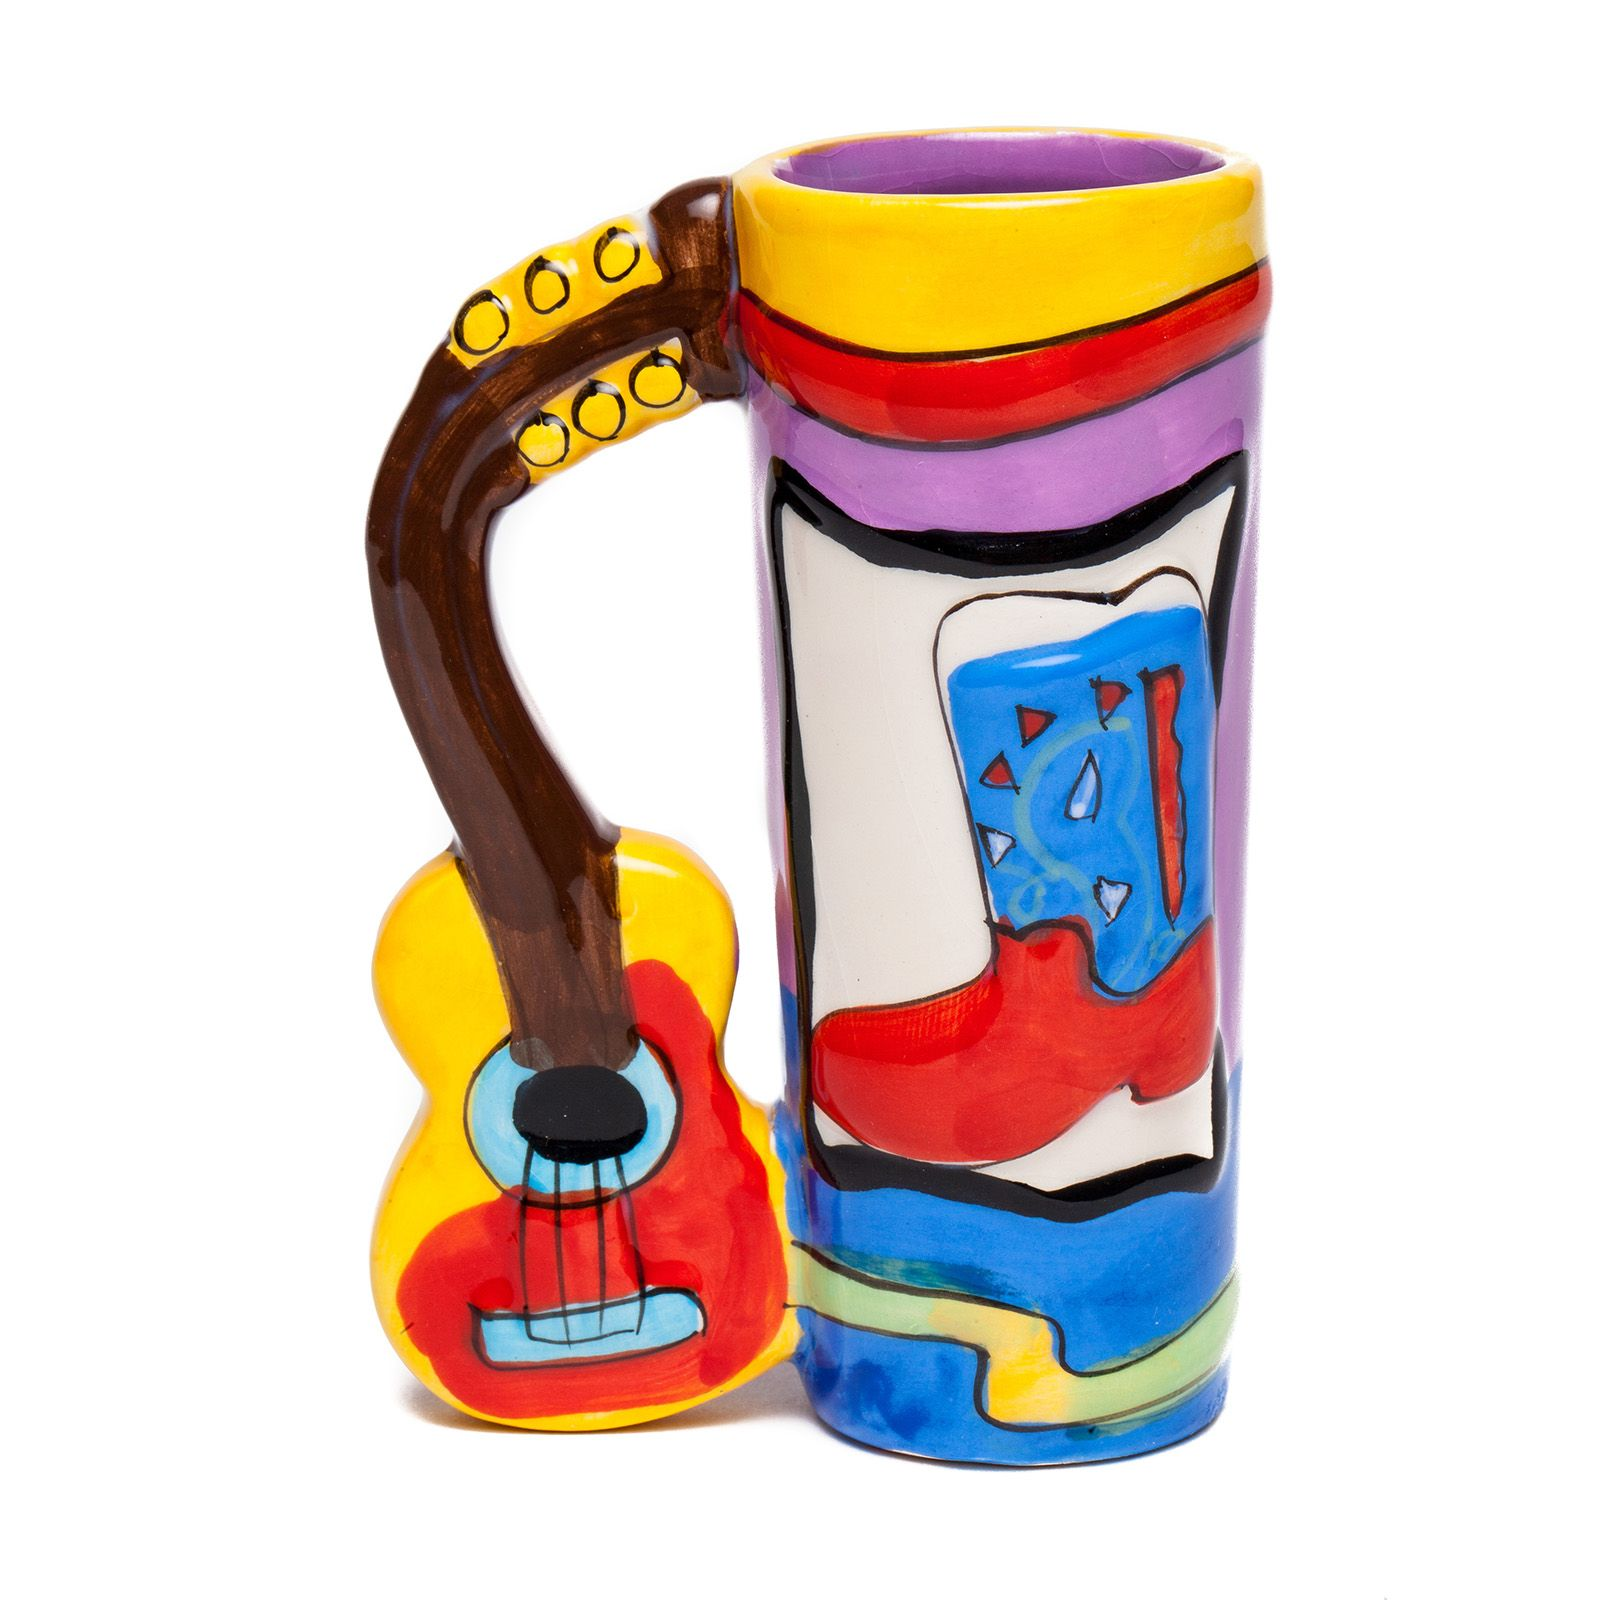 Austin Guitar Ceramic Shot Glass